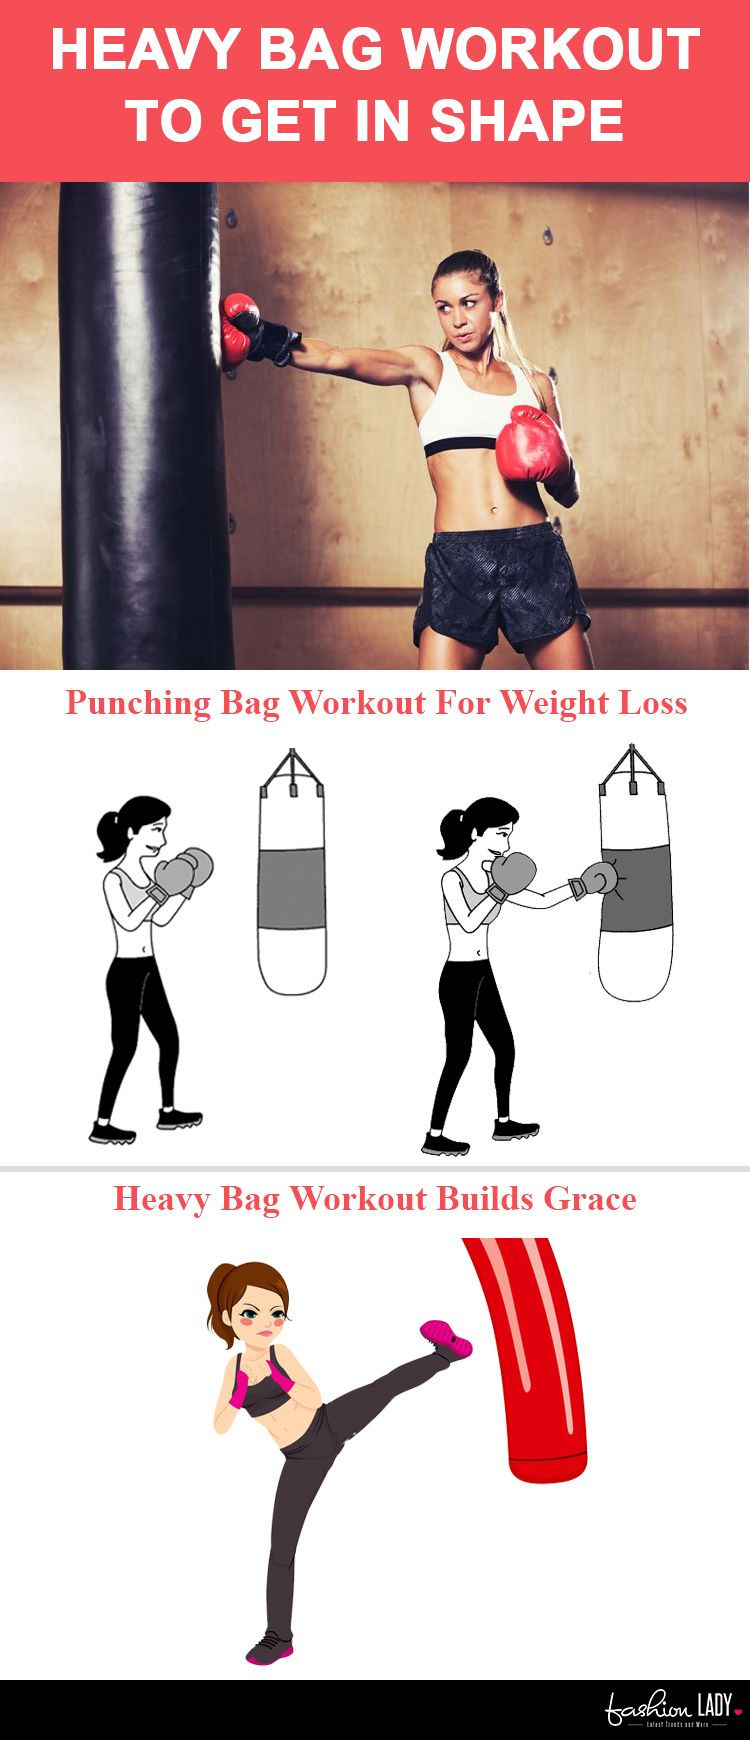 689d01ad3d Punching bag exercise for weight loss jessica heavy bag workout jessica  heavy bag workout jpg 750x1740